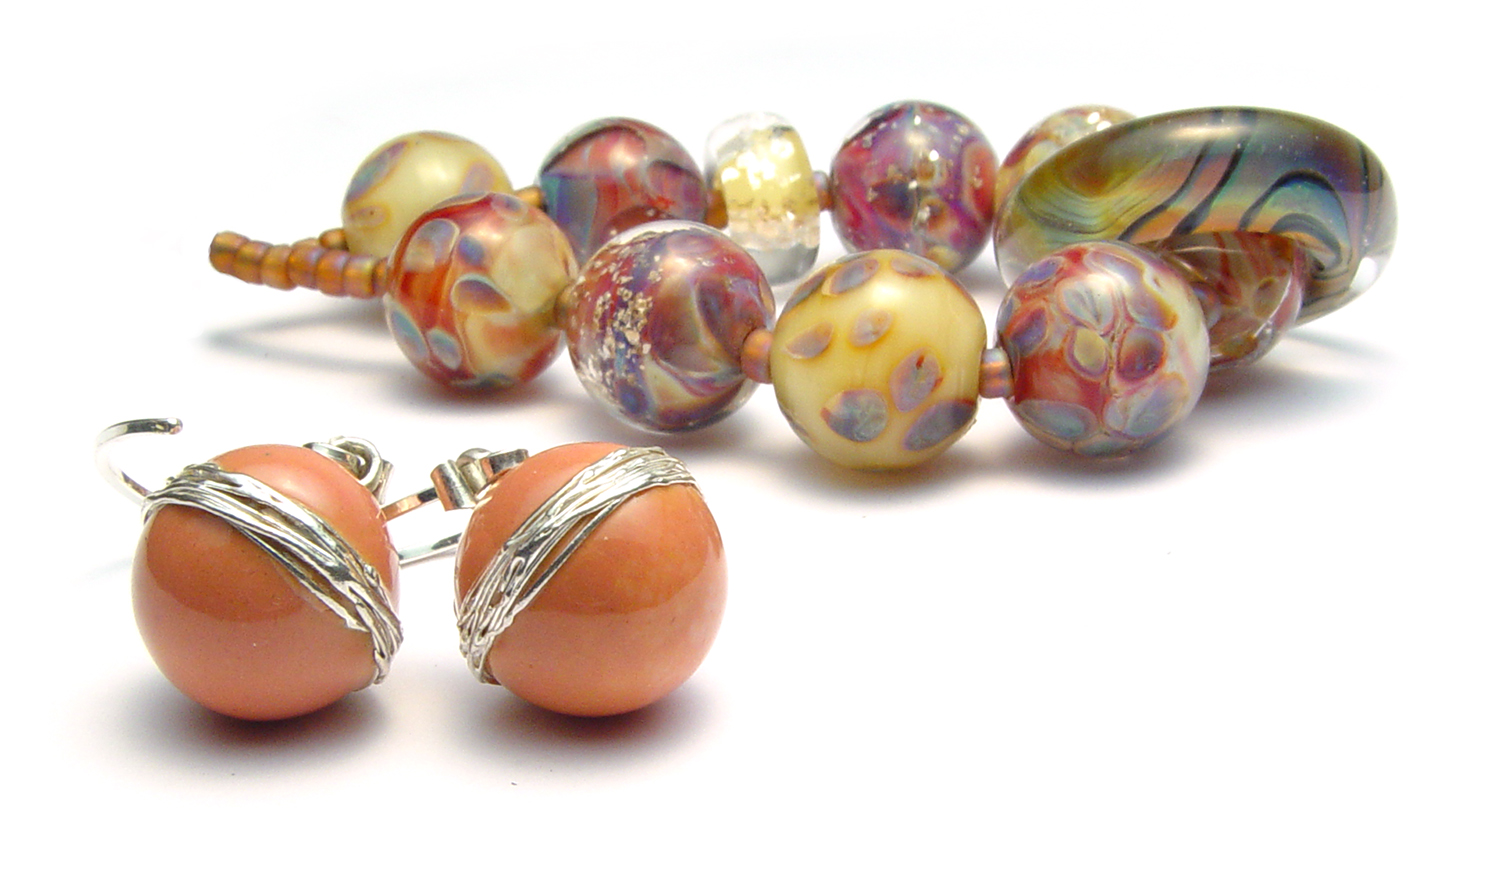 Apricot Earrings - $50 JillSymons.com Lampwork